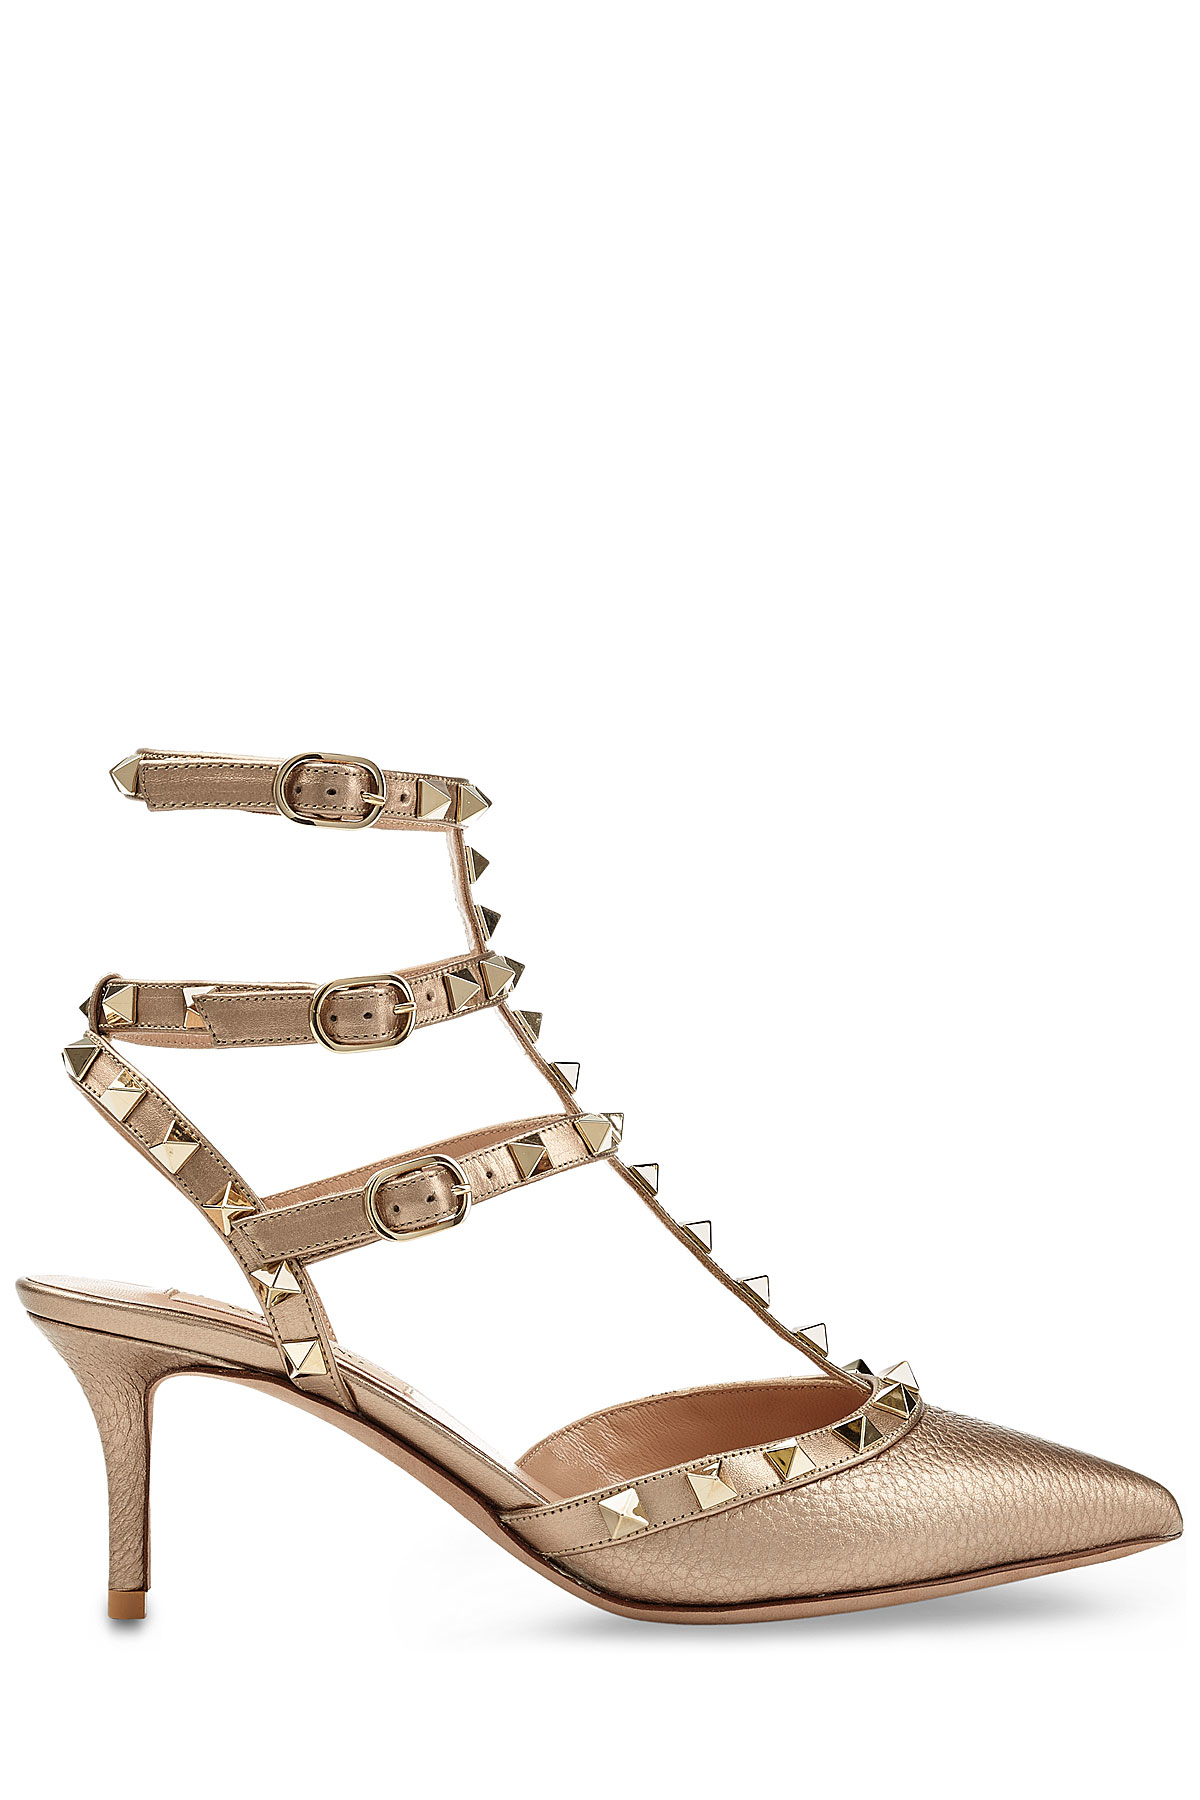 83e61fadb2 Valentino Rockstud Leather Kitten Heels - Brown in Metallic - Lyst